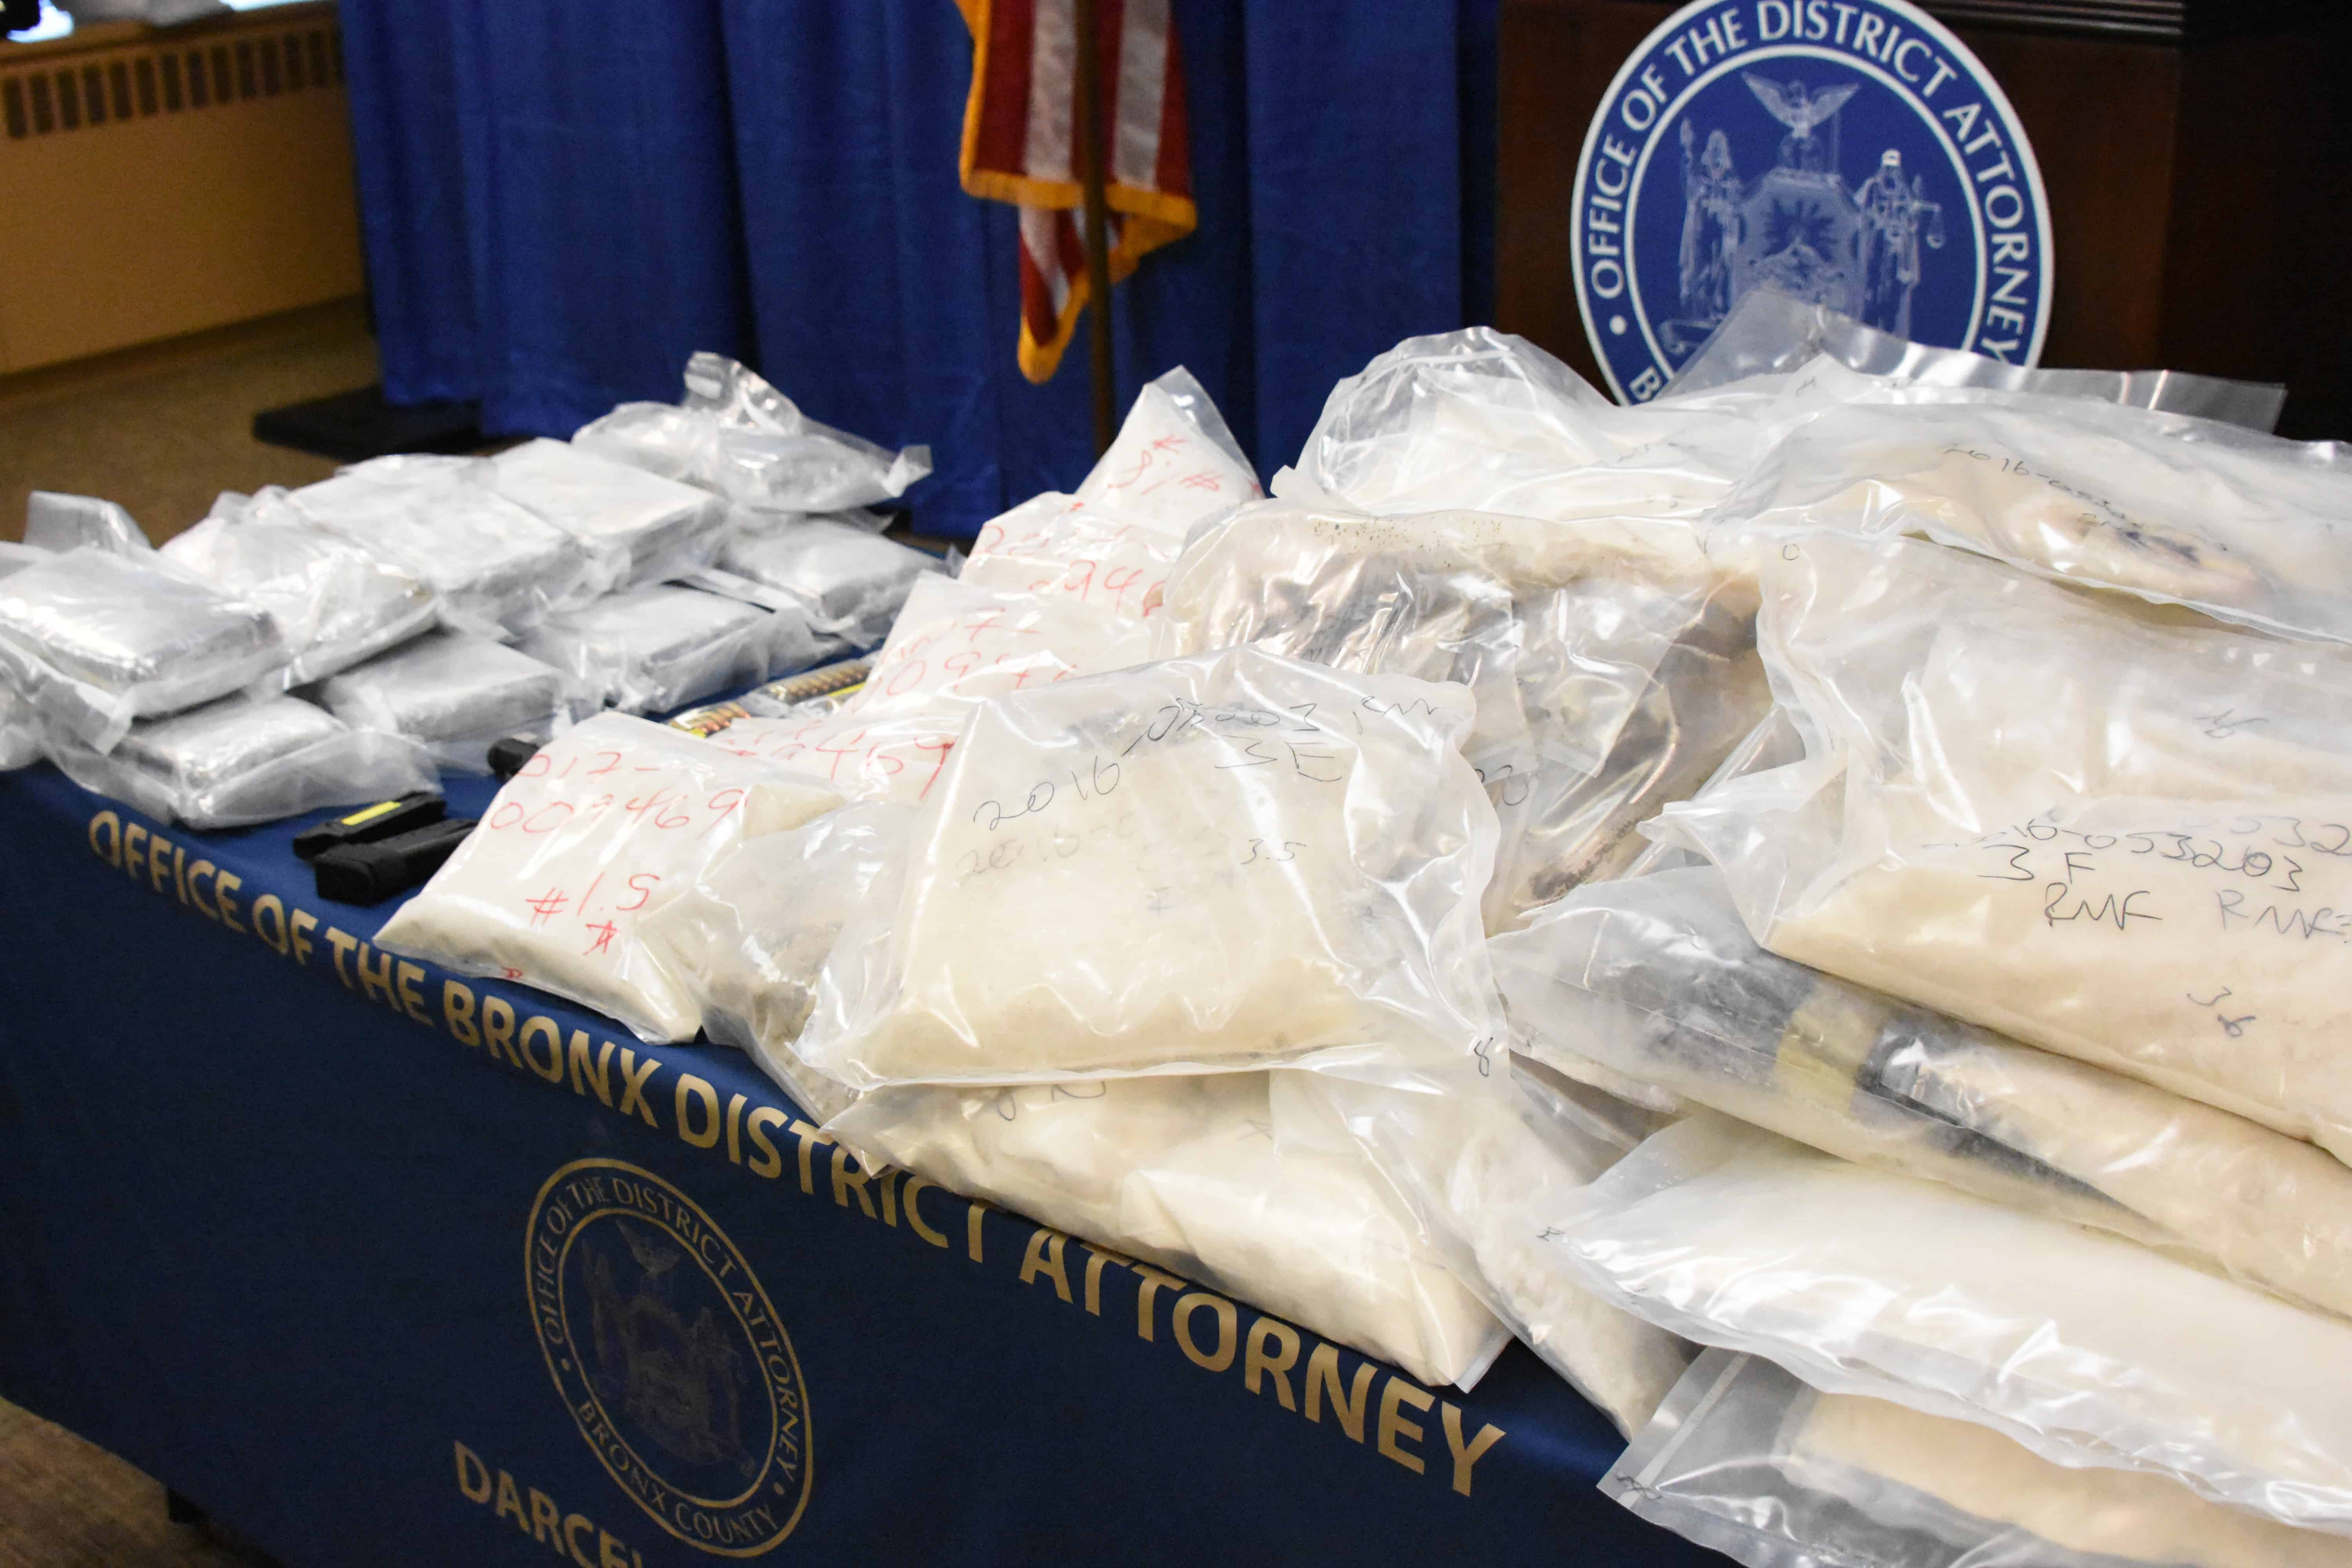 fentanyl and heroin seized by NYFD